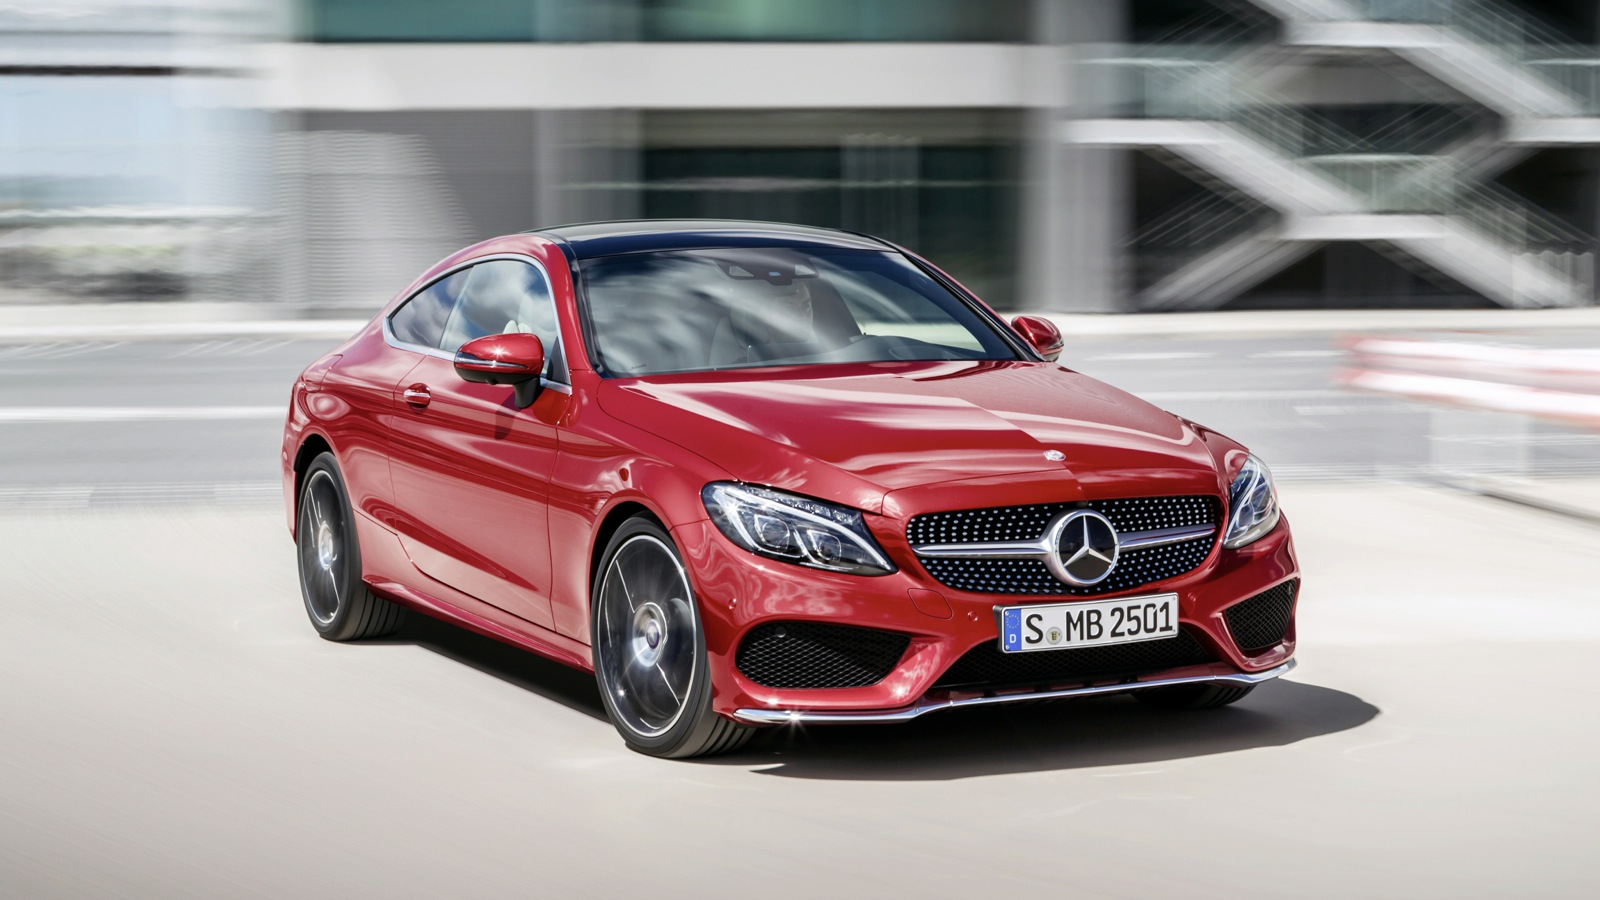 2016 mercedes benz c class coupe revealed photos caradvice for Mercedes benz 2015 c class price